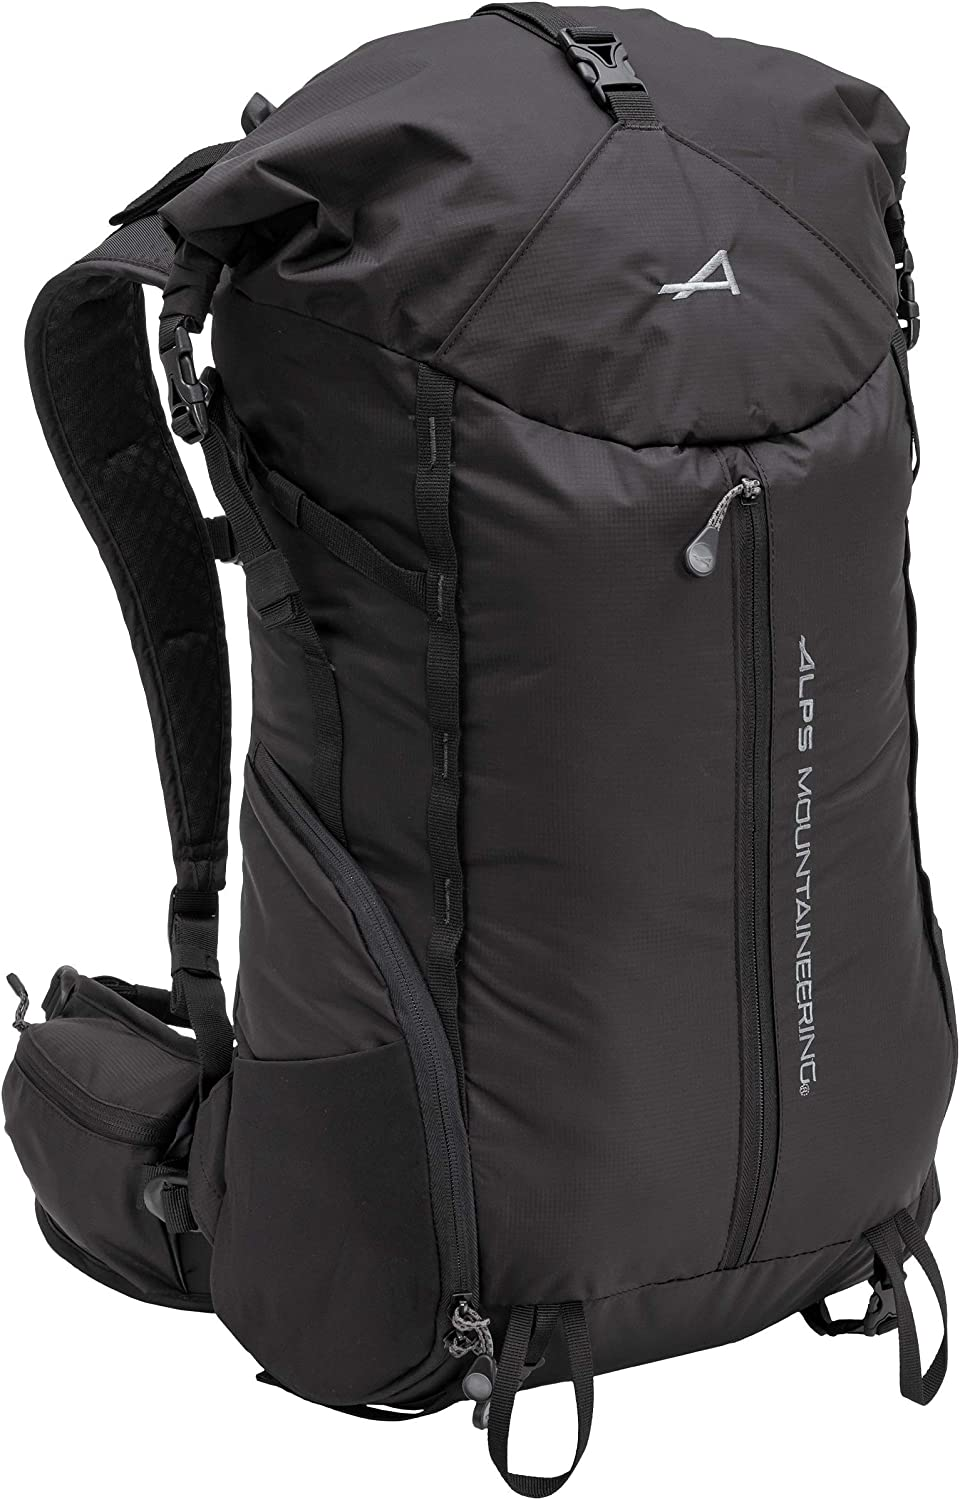 ALPS Mountaineering Tour Day Backpack 35-45L